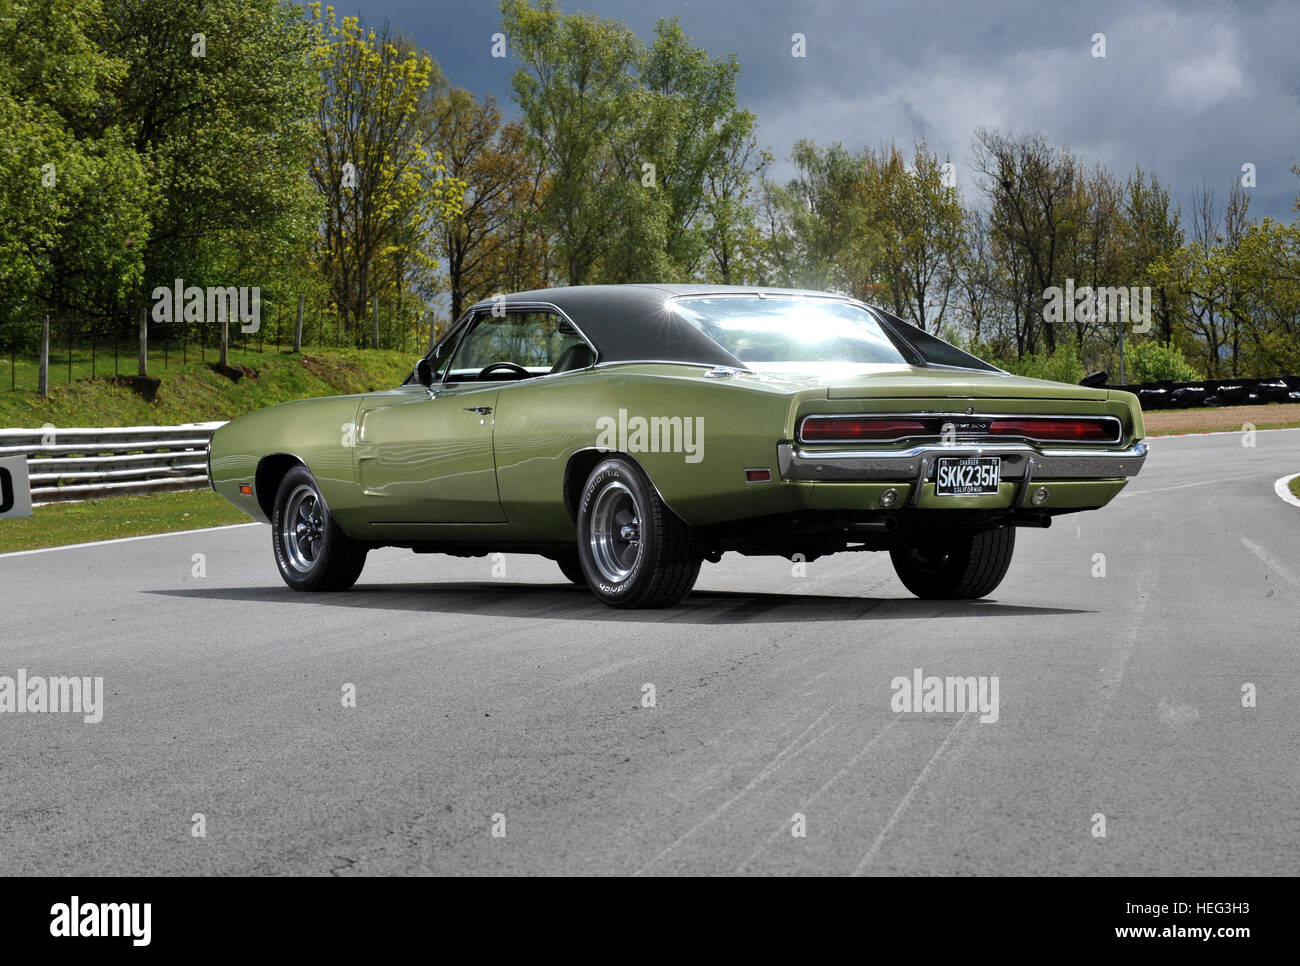 Classic American Muscle Car Stock Photos & Classic American Muscle ...